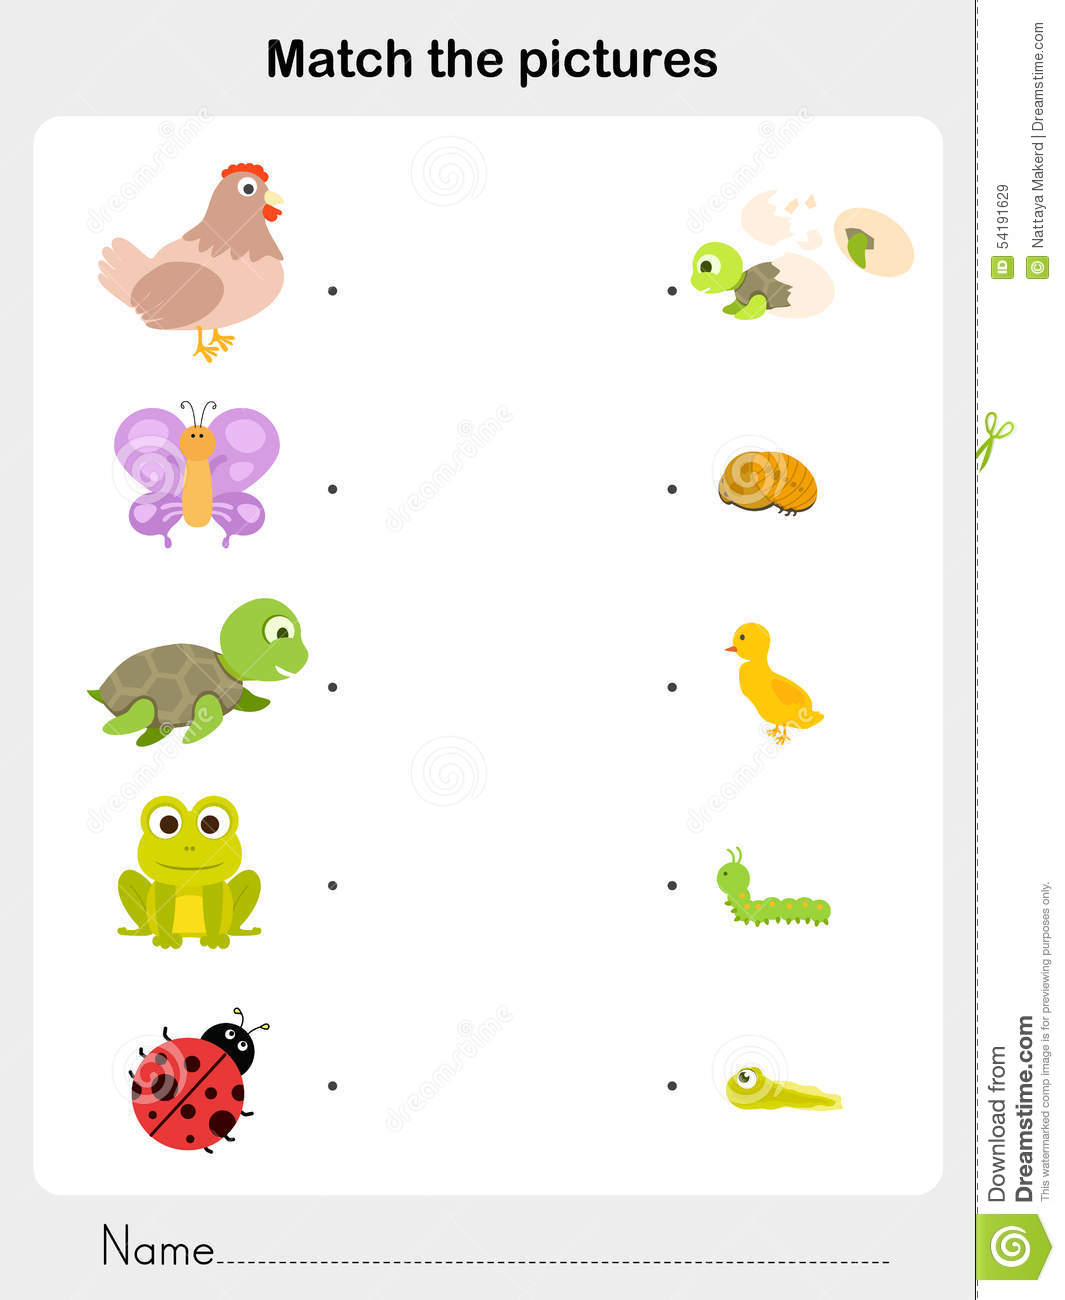 ... life cycle worksheet for education match animal life cycle worksheet